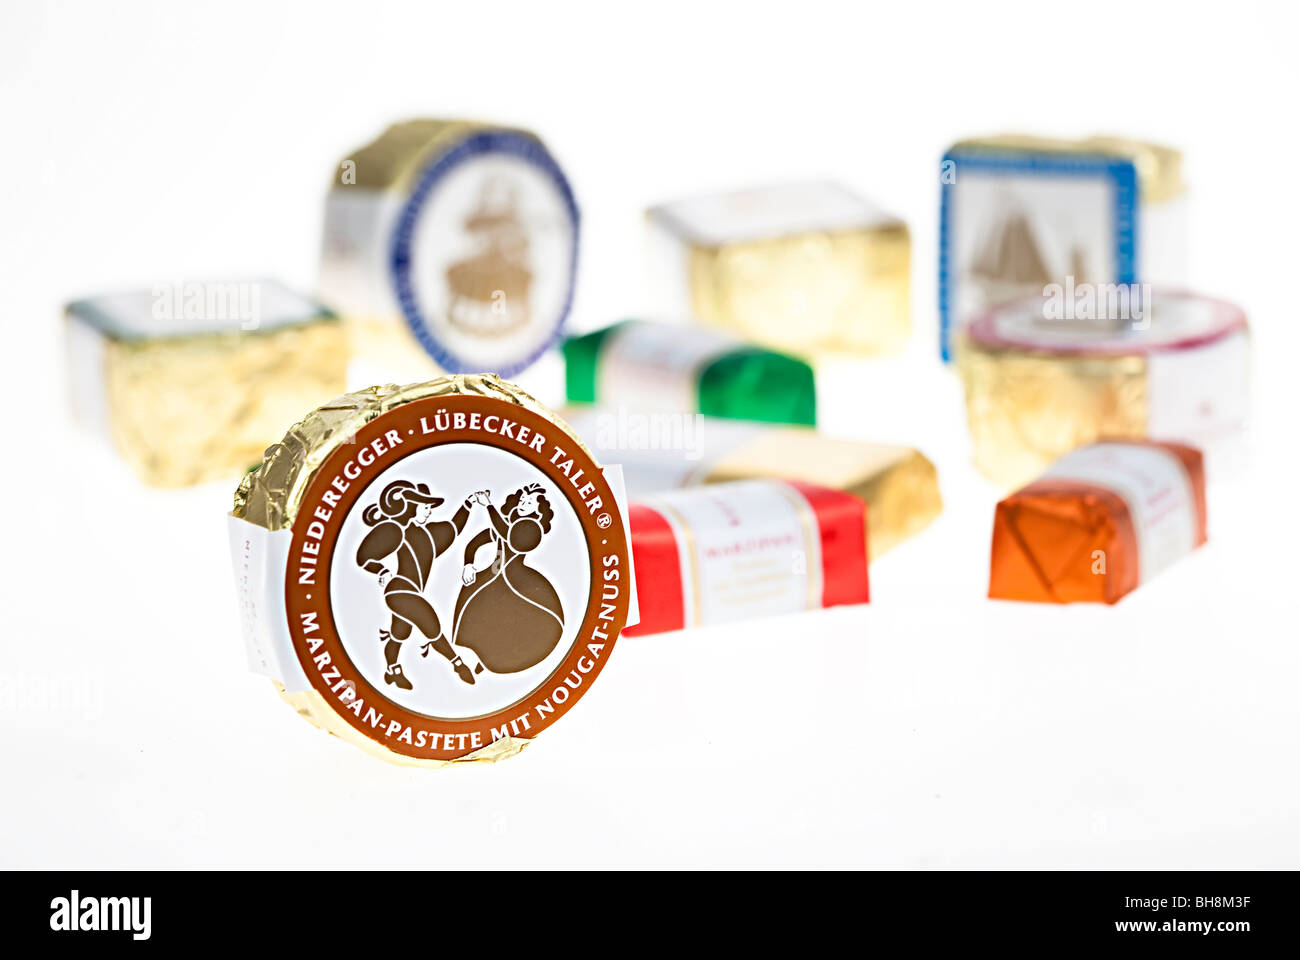 Niederegger marzipan from Lubeck Germany - Stock Image